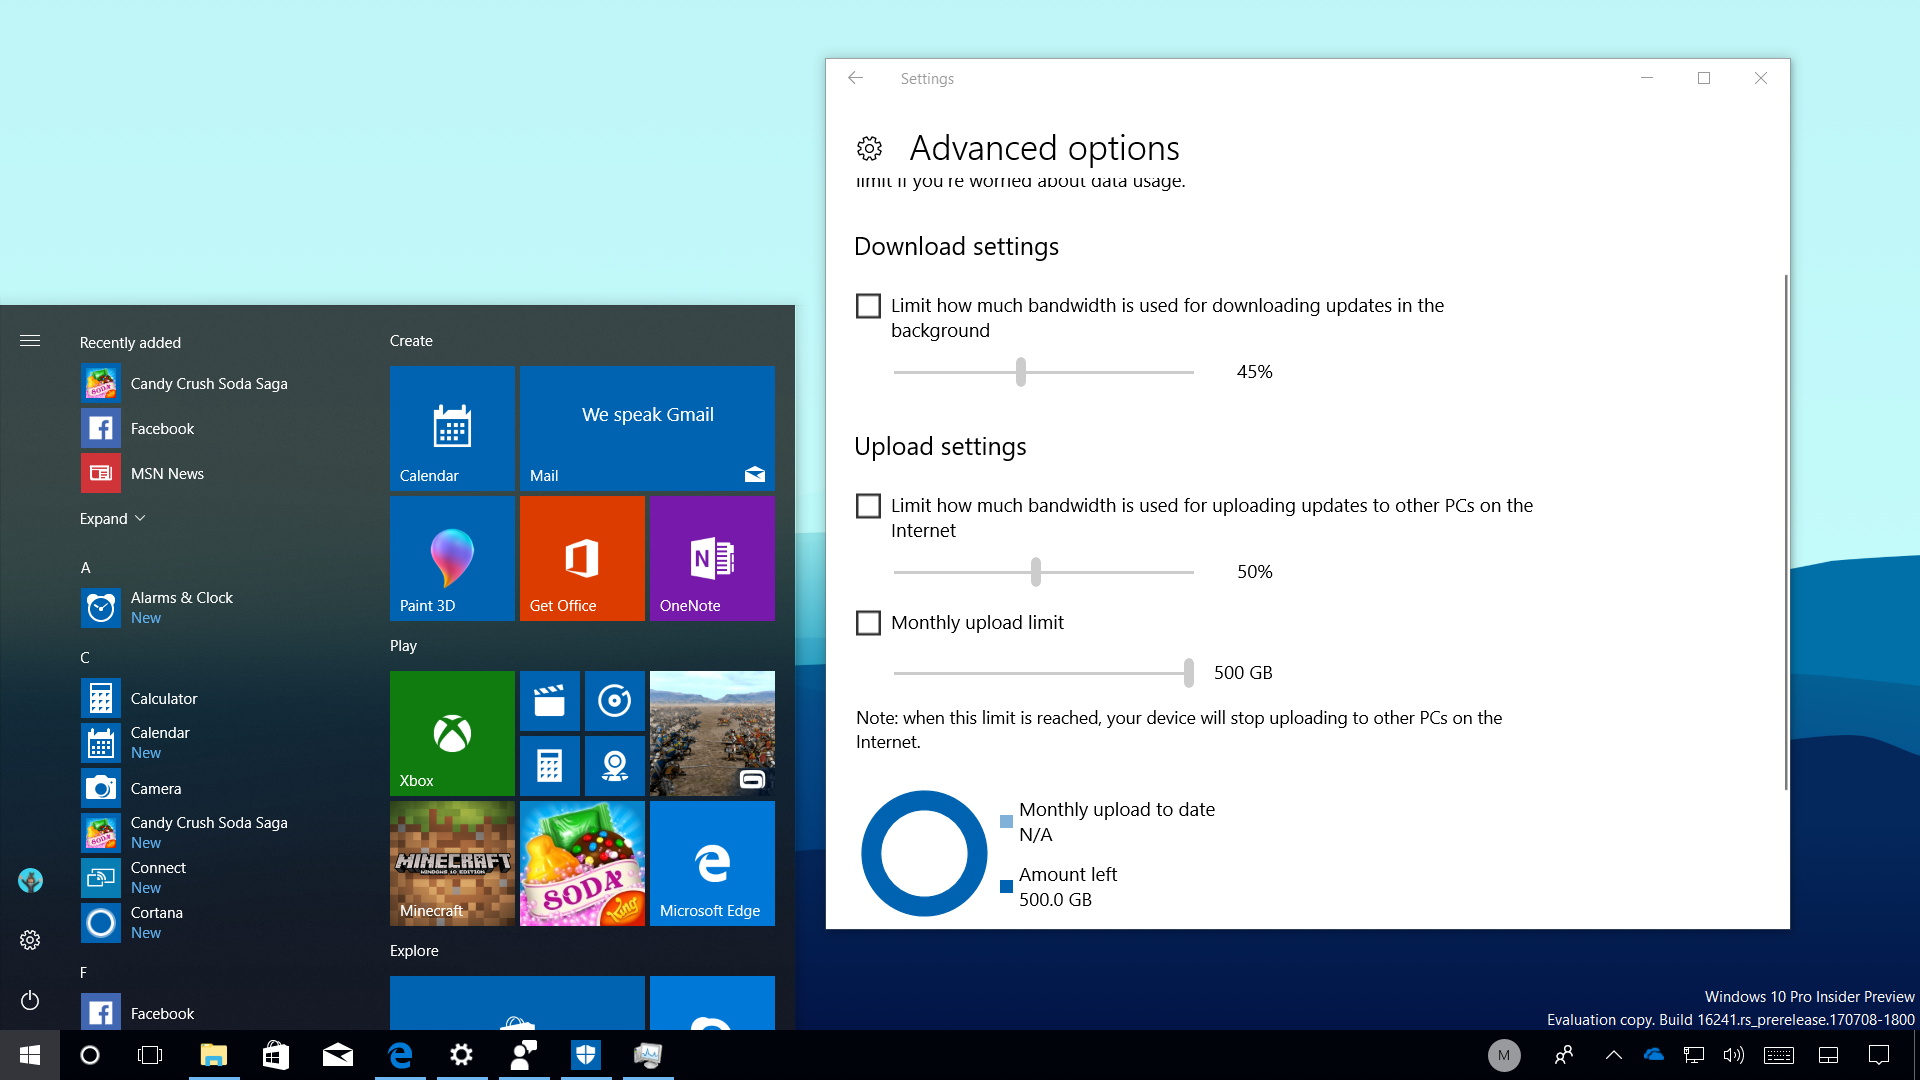 Windows 10 build 16241